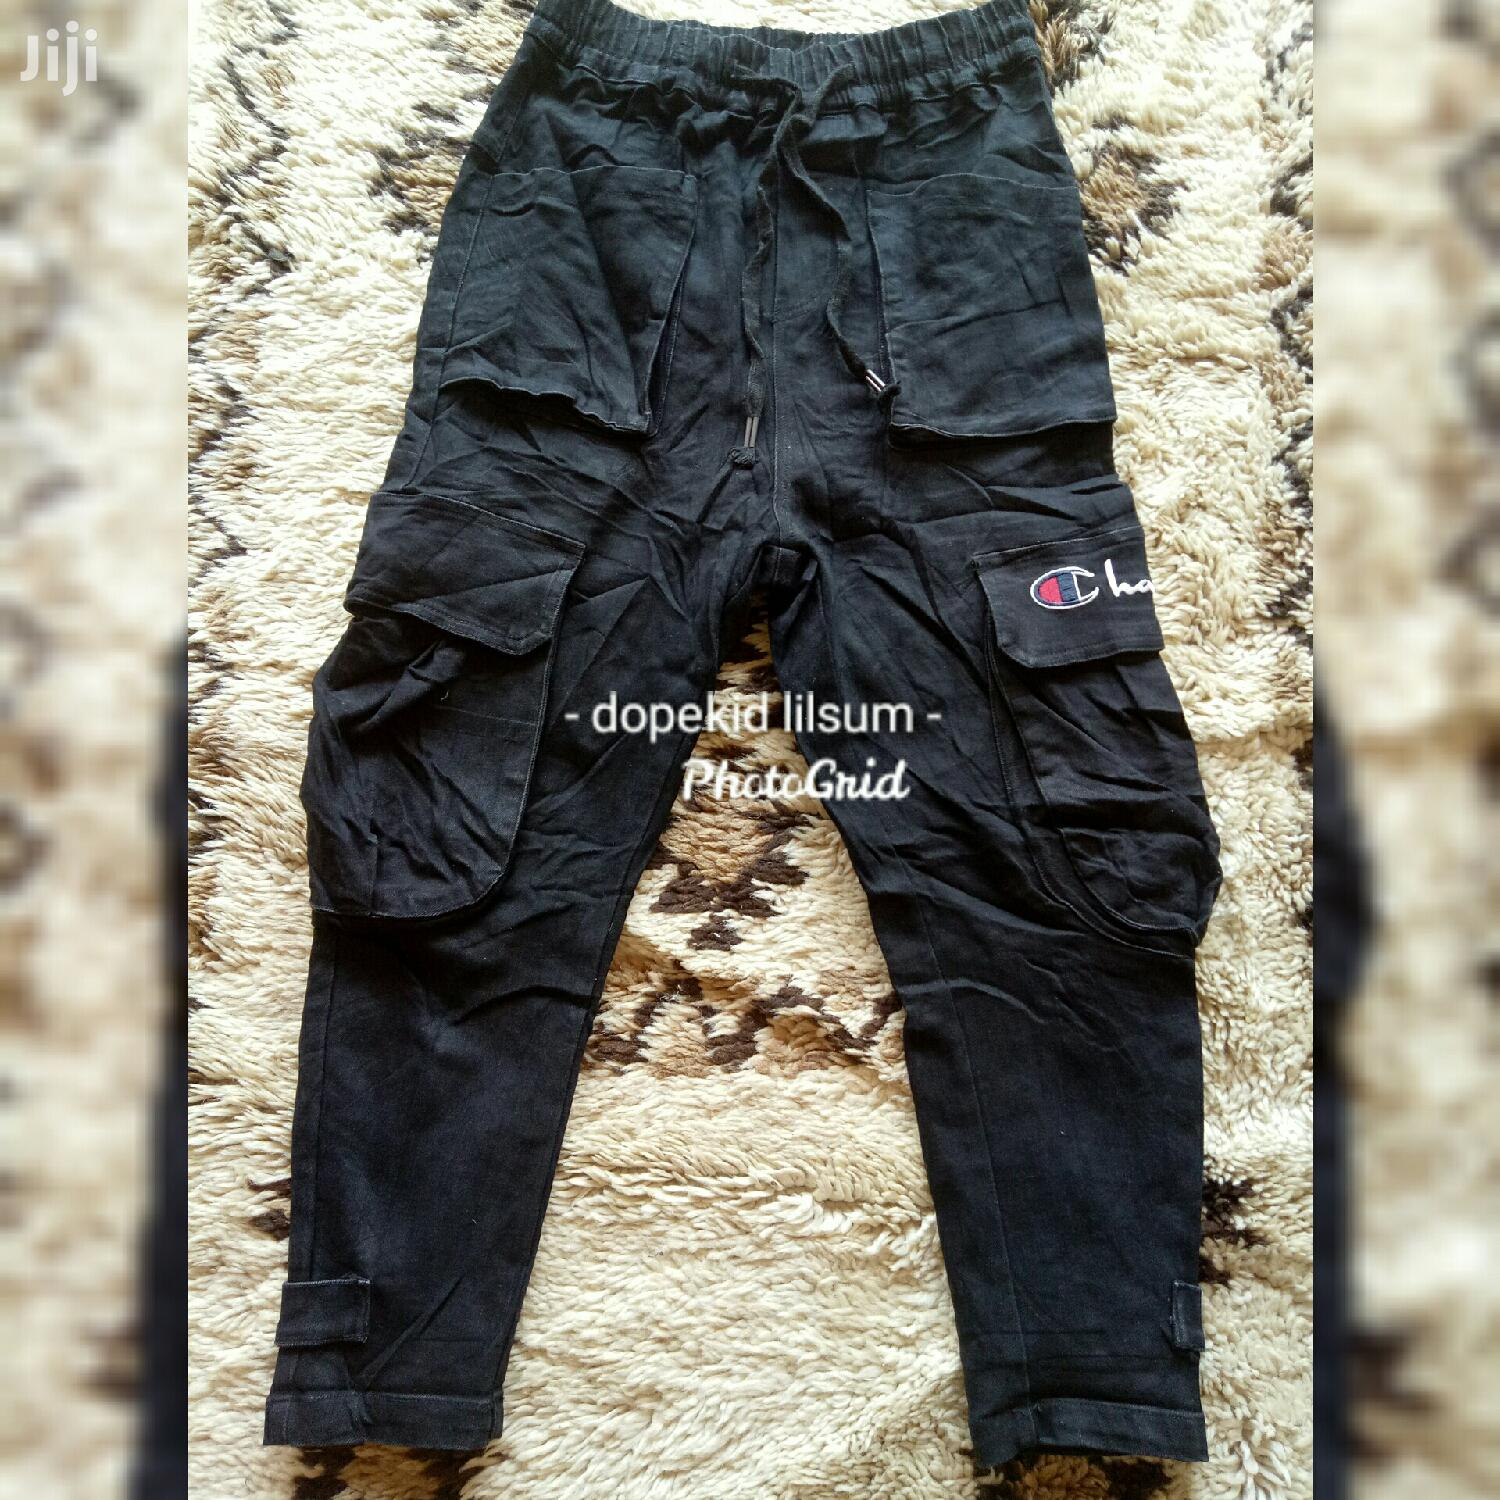 Adult Unisex Cargo Pants | Clothing for sale in Kampala, Central Region, Uganda